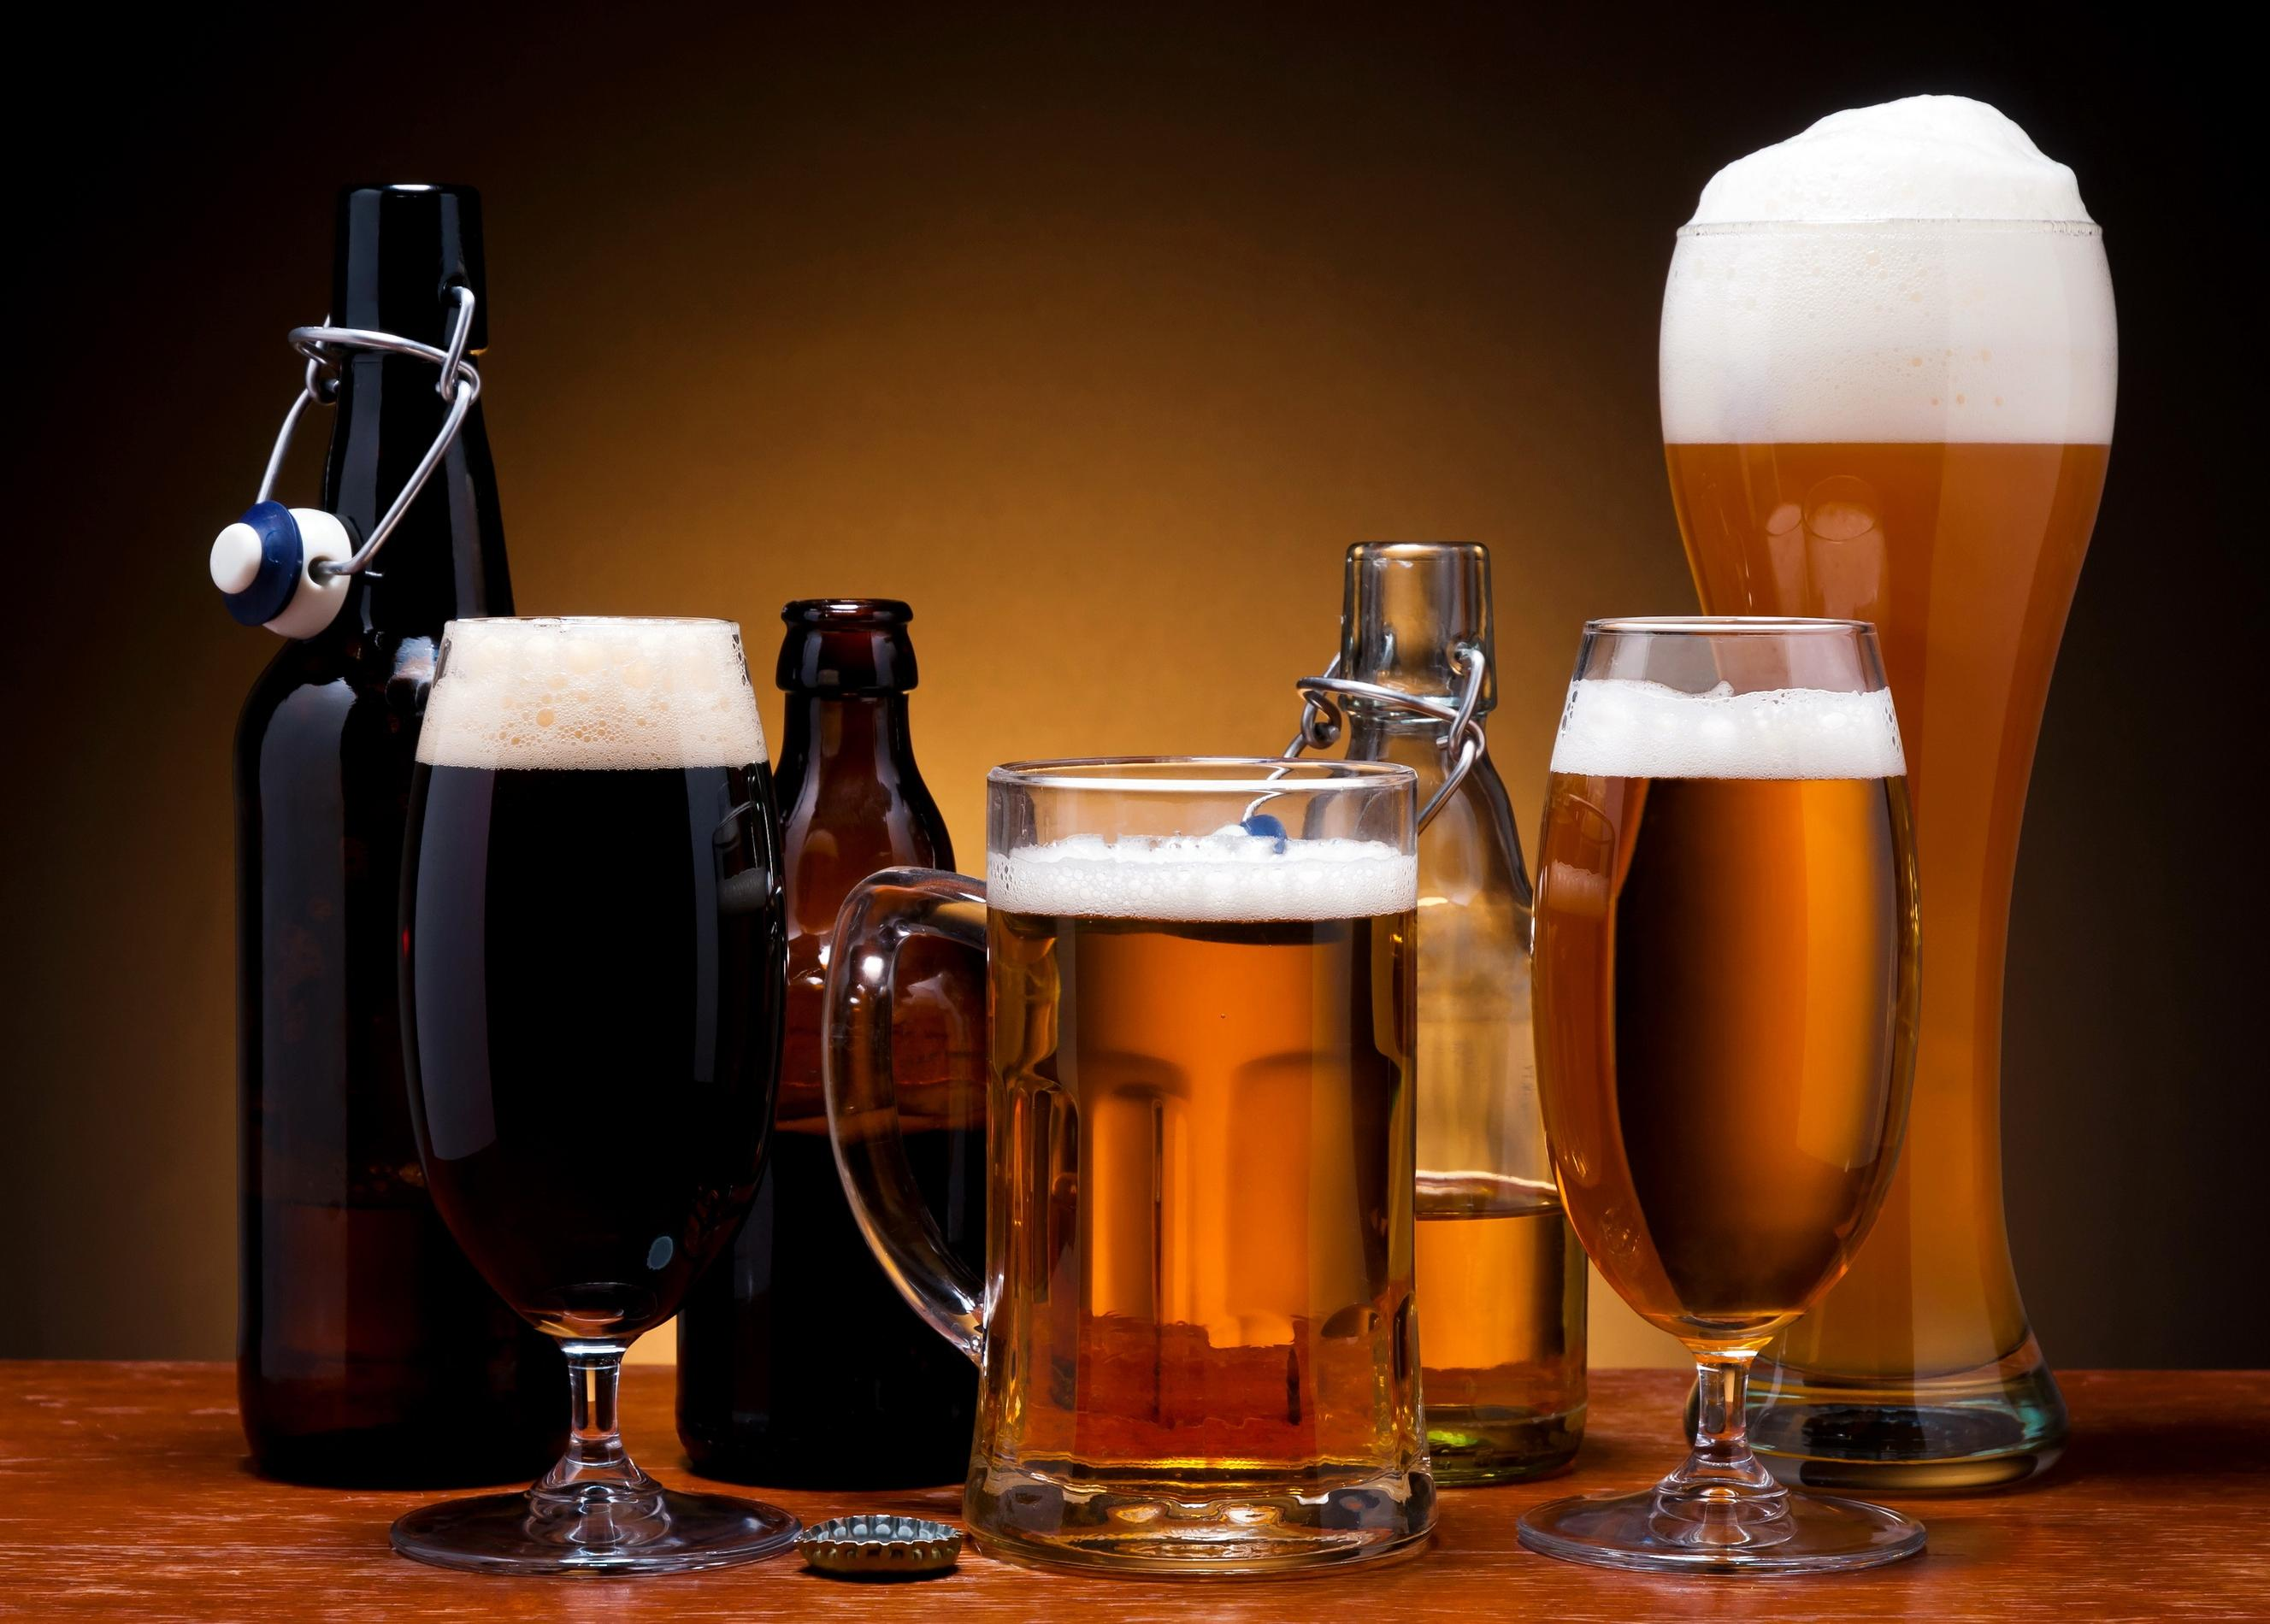 beer_diversity_glasses_bottles_hd-wallpaper-68301